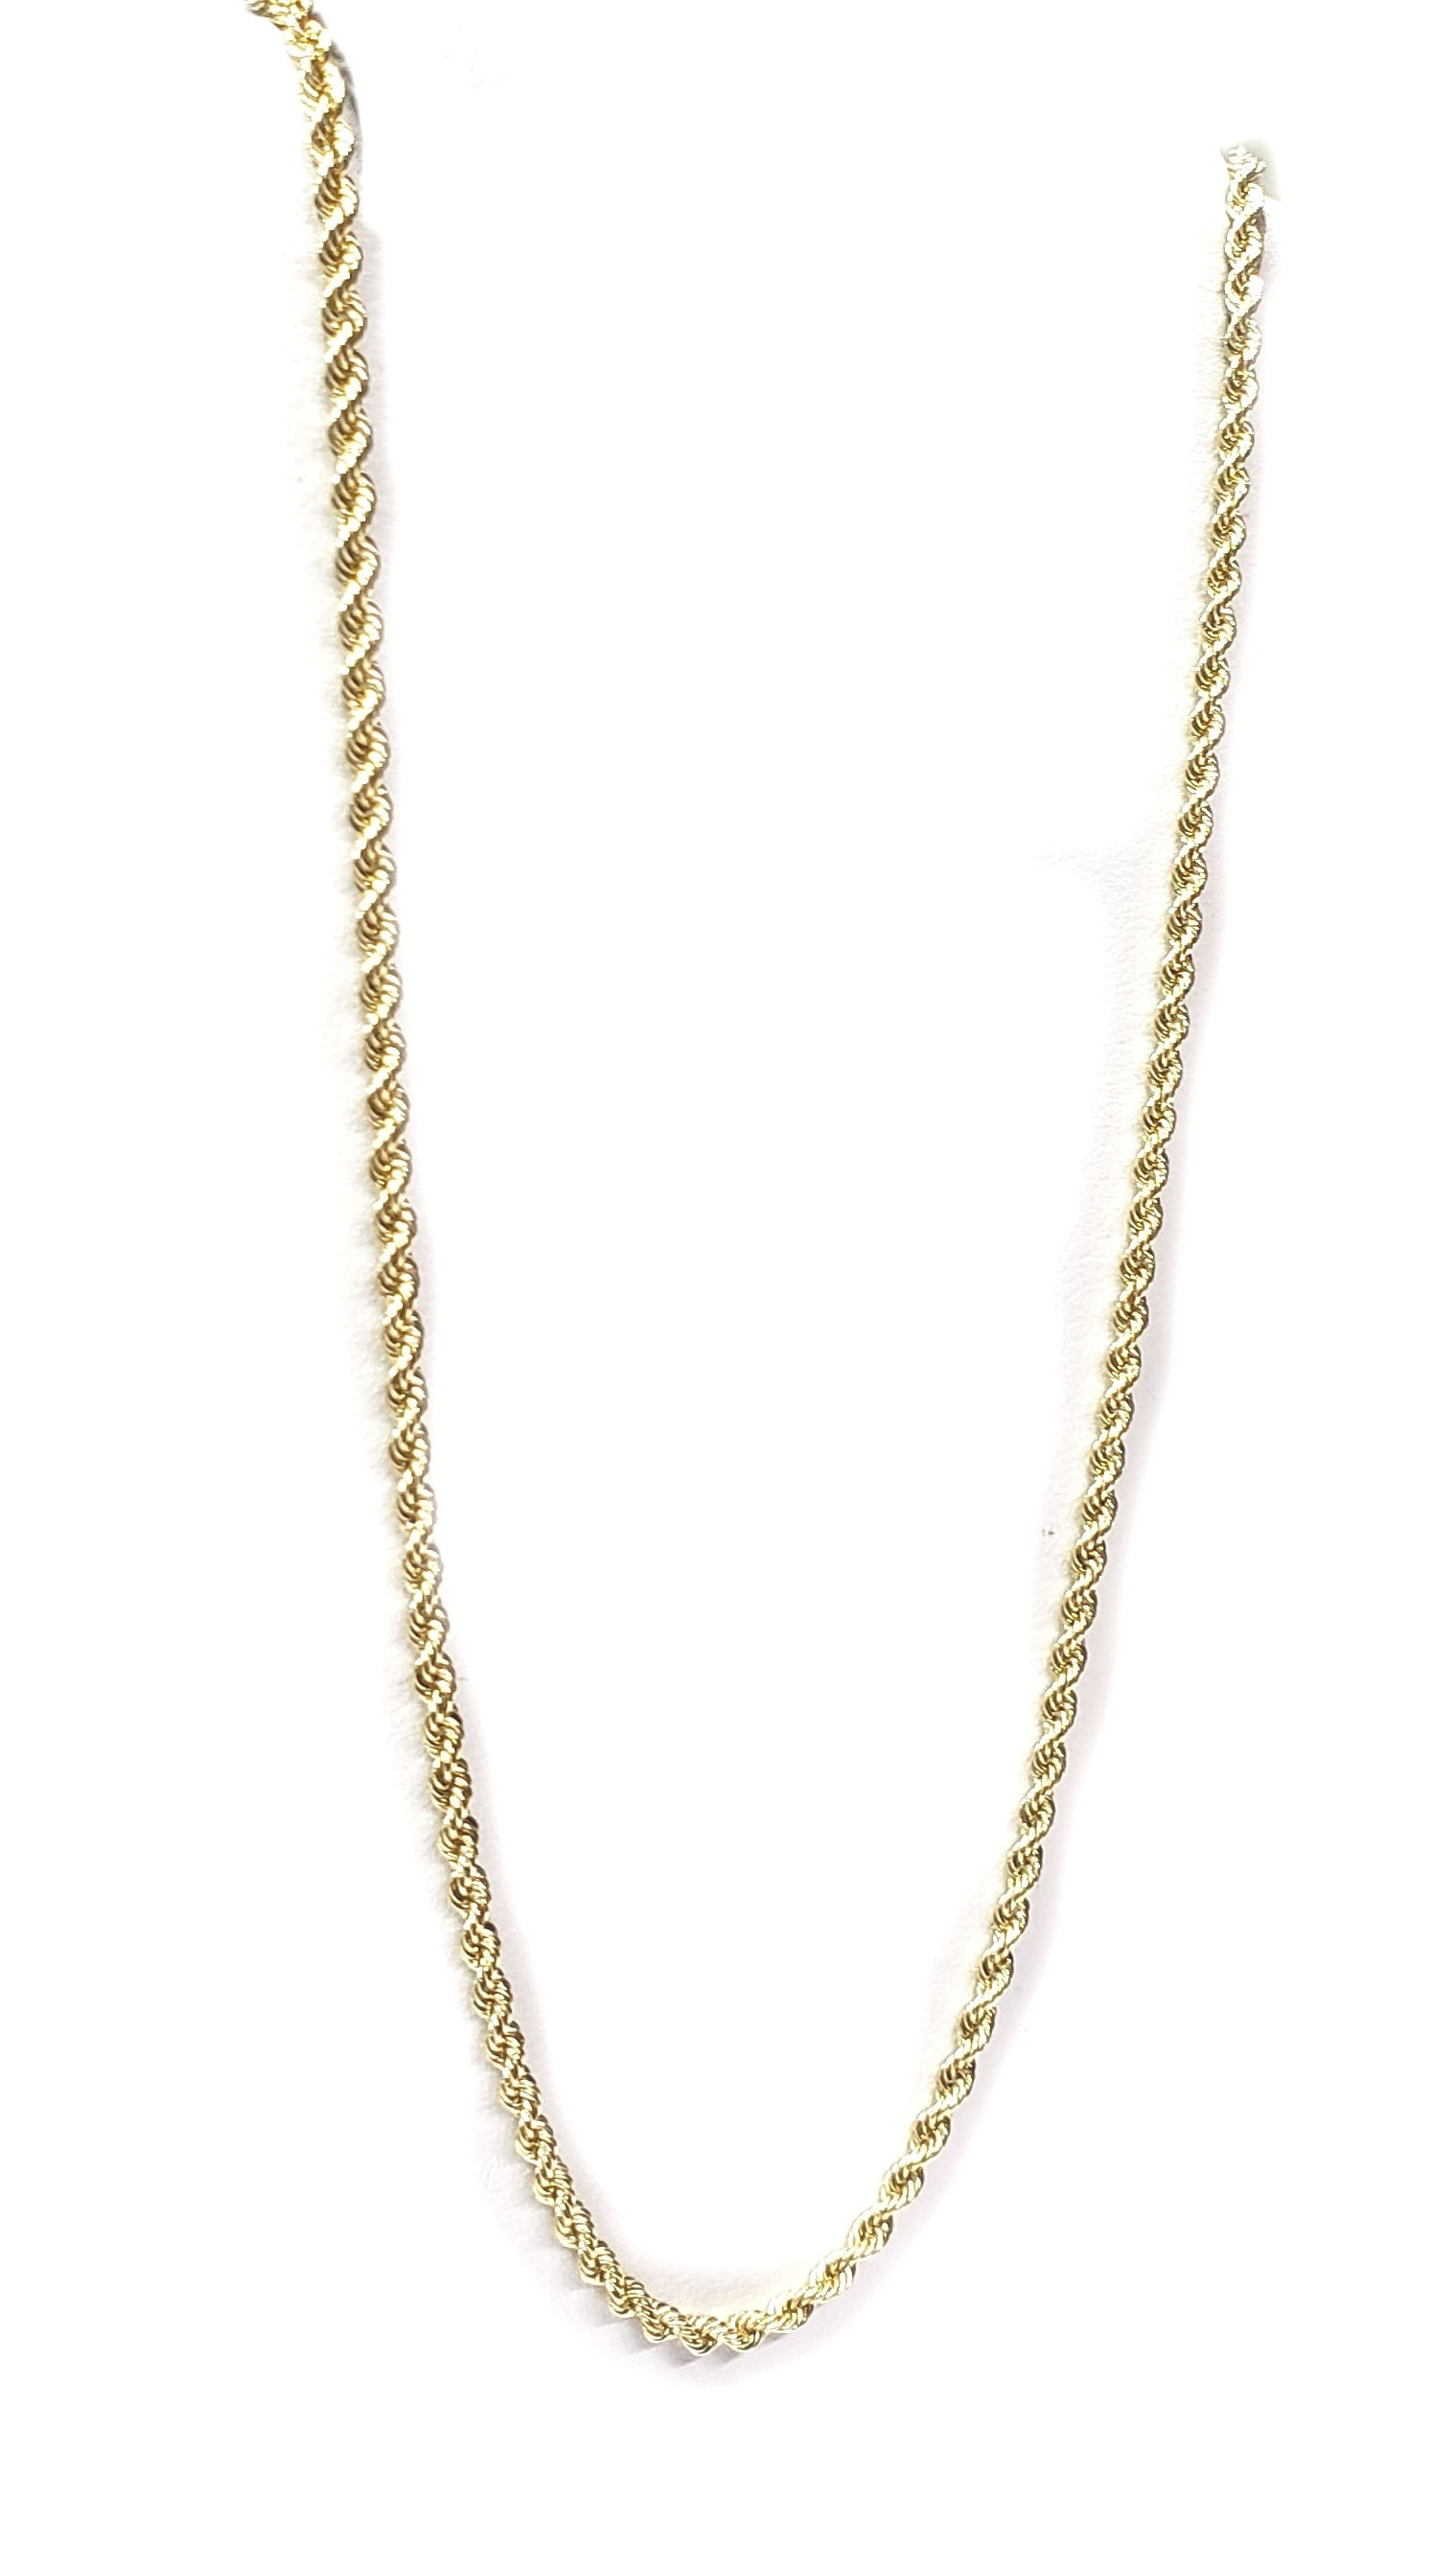 Rope Chain Neck Chain 1.5mm Wide in Assorted Lengths, 14kt Gold